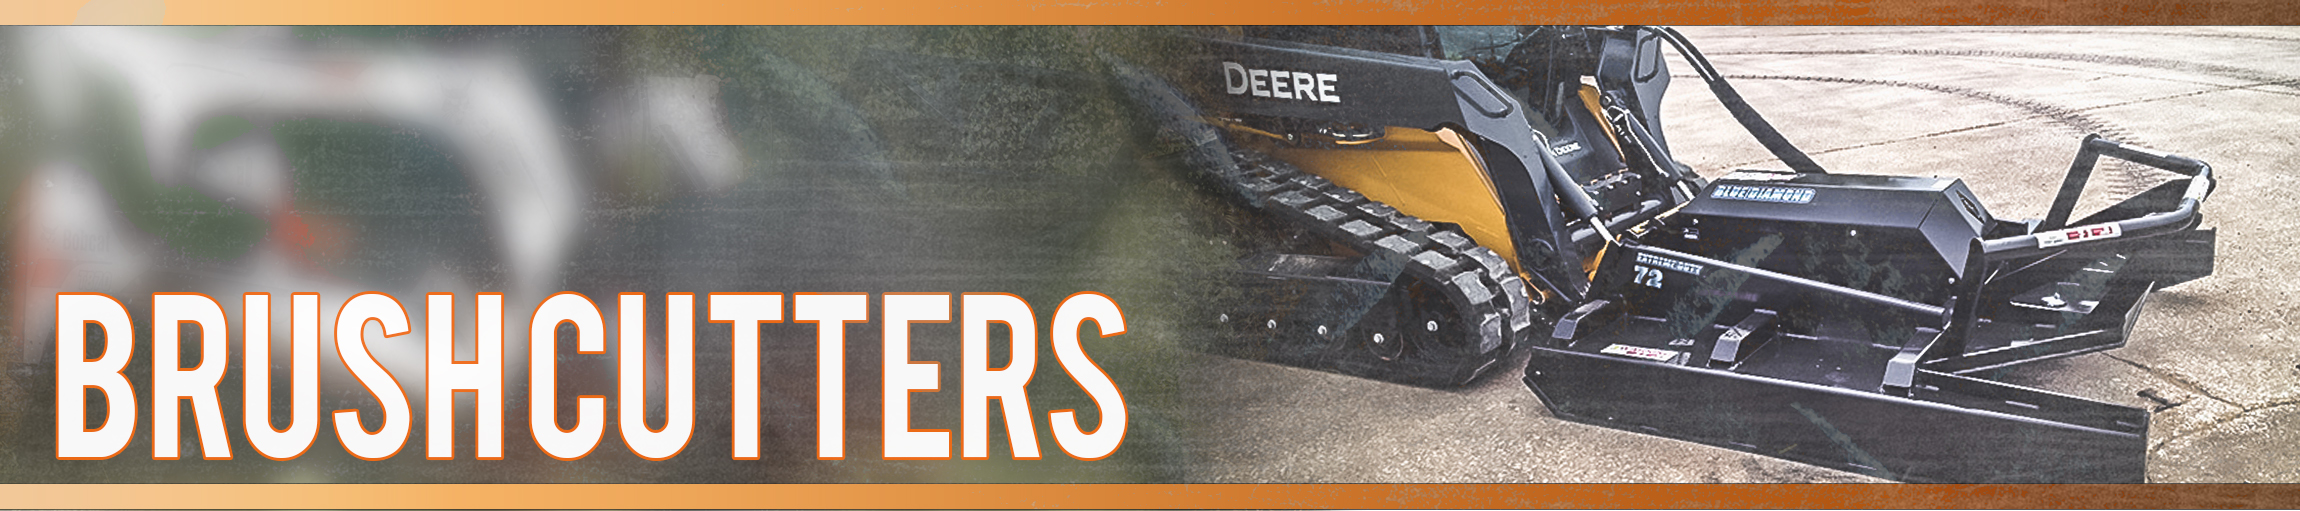 Closed and Open Front Brushcutters For Skid Steer And Track Loader Machines